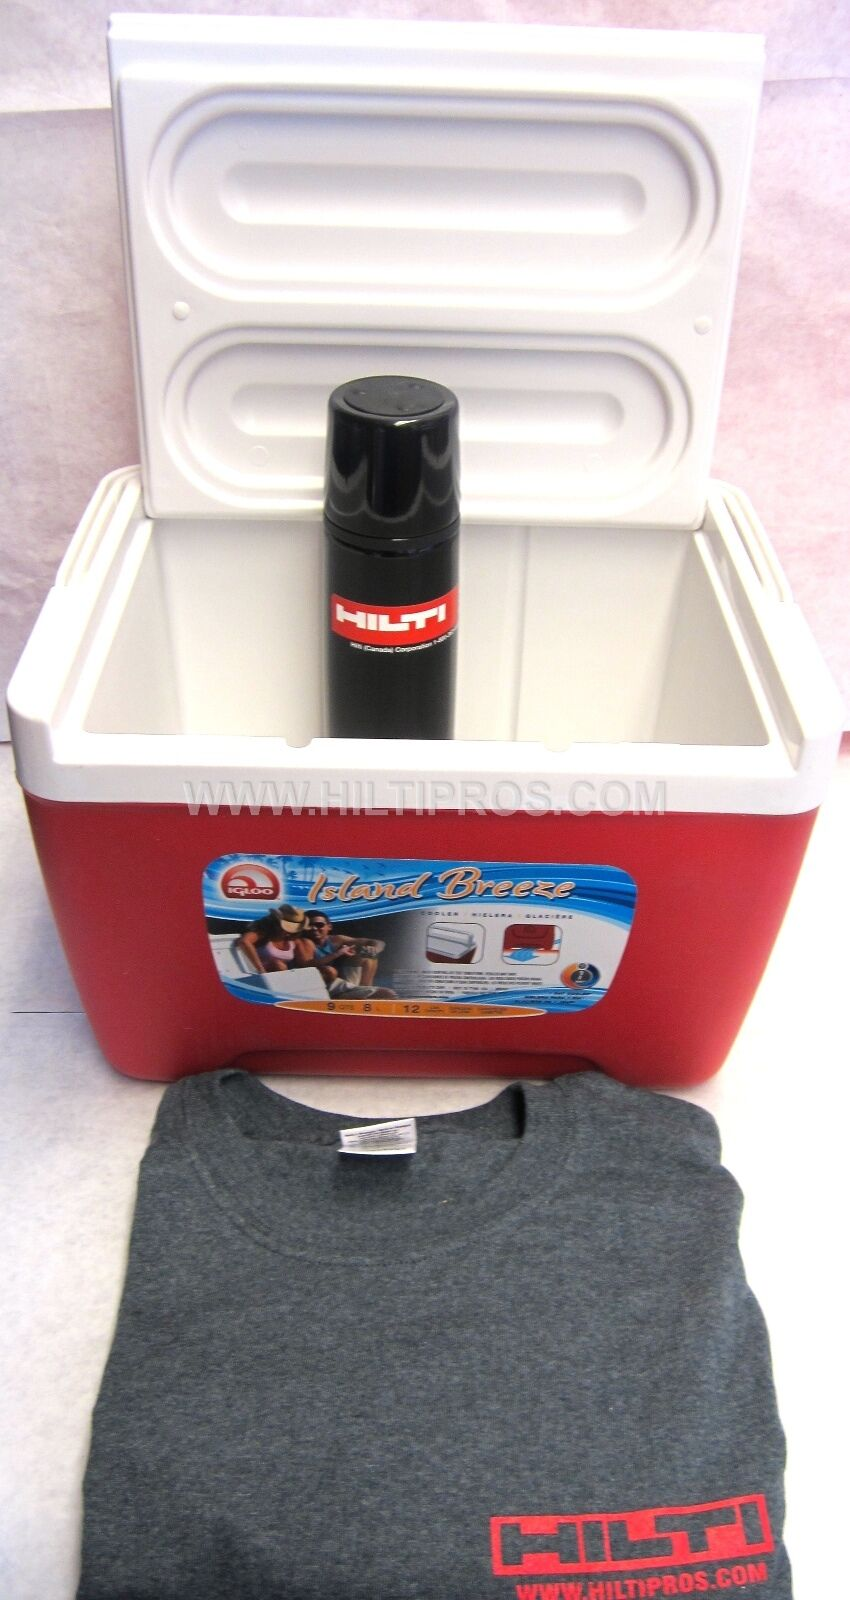 HILTI COOLER, T-SHIRT, HILTI THERMAL SHIPPING BOTTLE, EXCLUSIVE SET, FAST SHIPPING THERMAL 379639